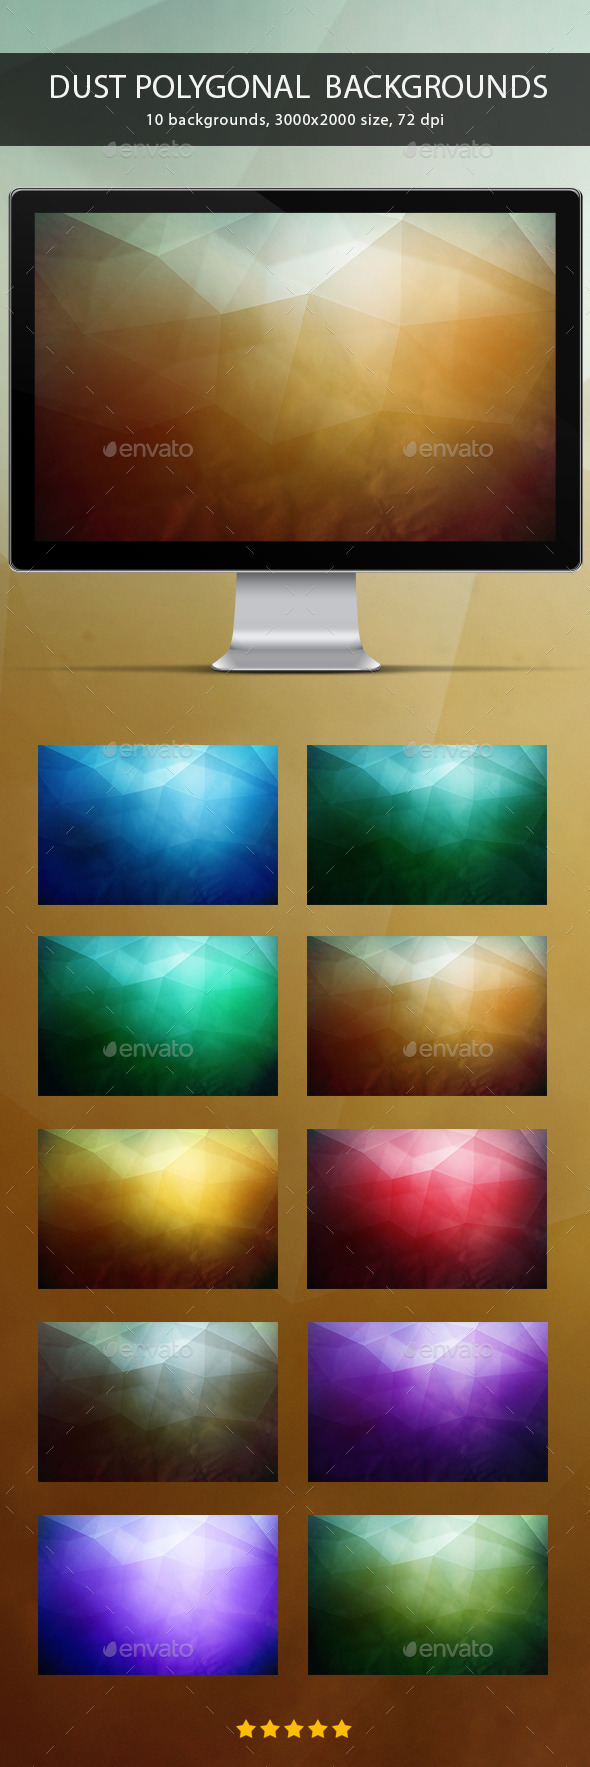 Dust Polygonal Backgrounds - Abstract Backgrounds